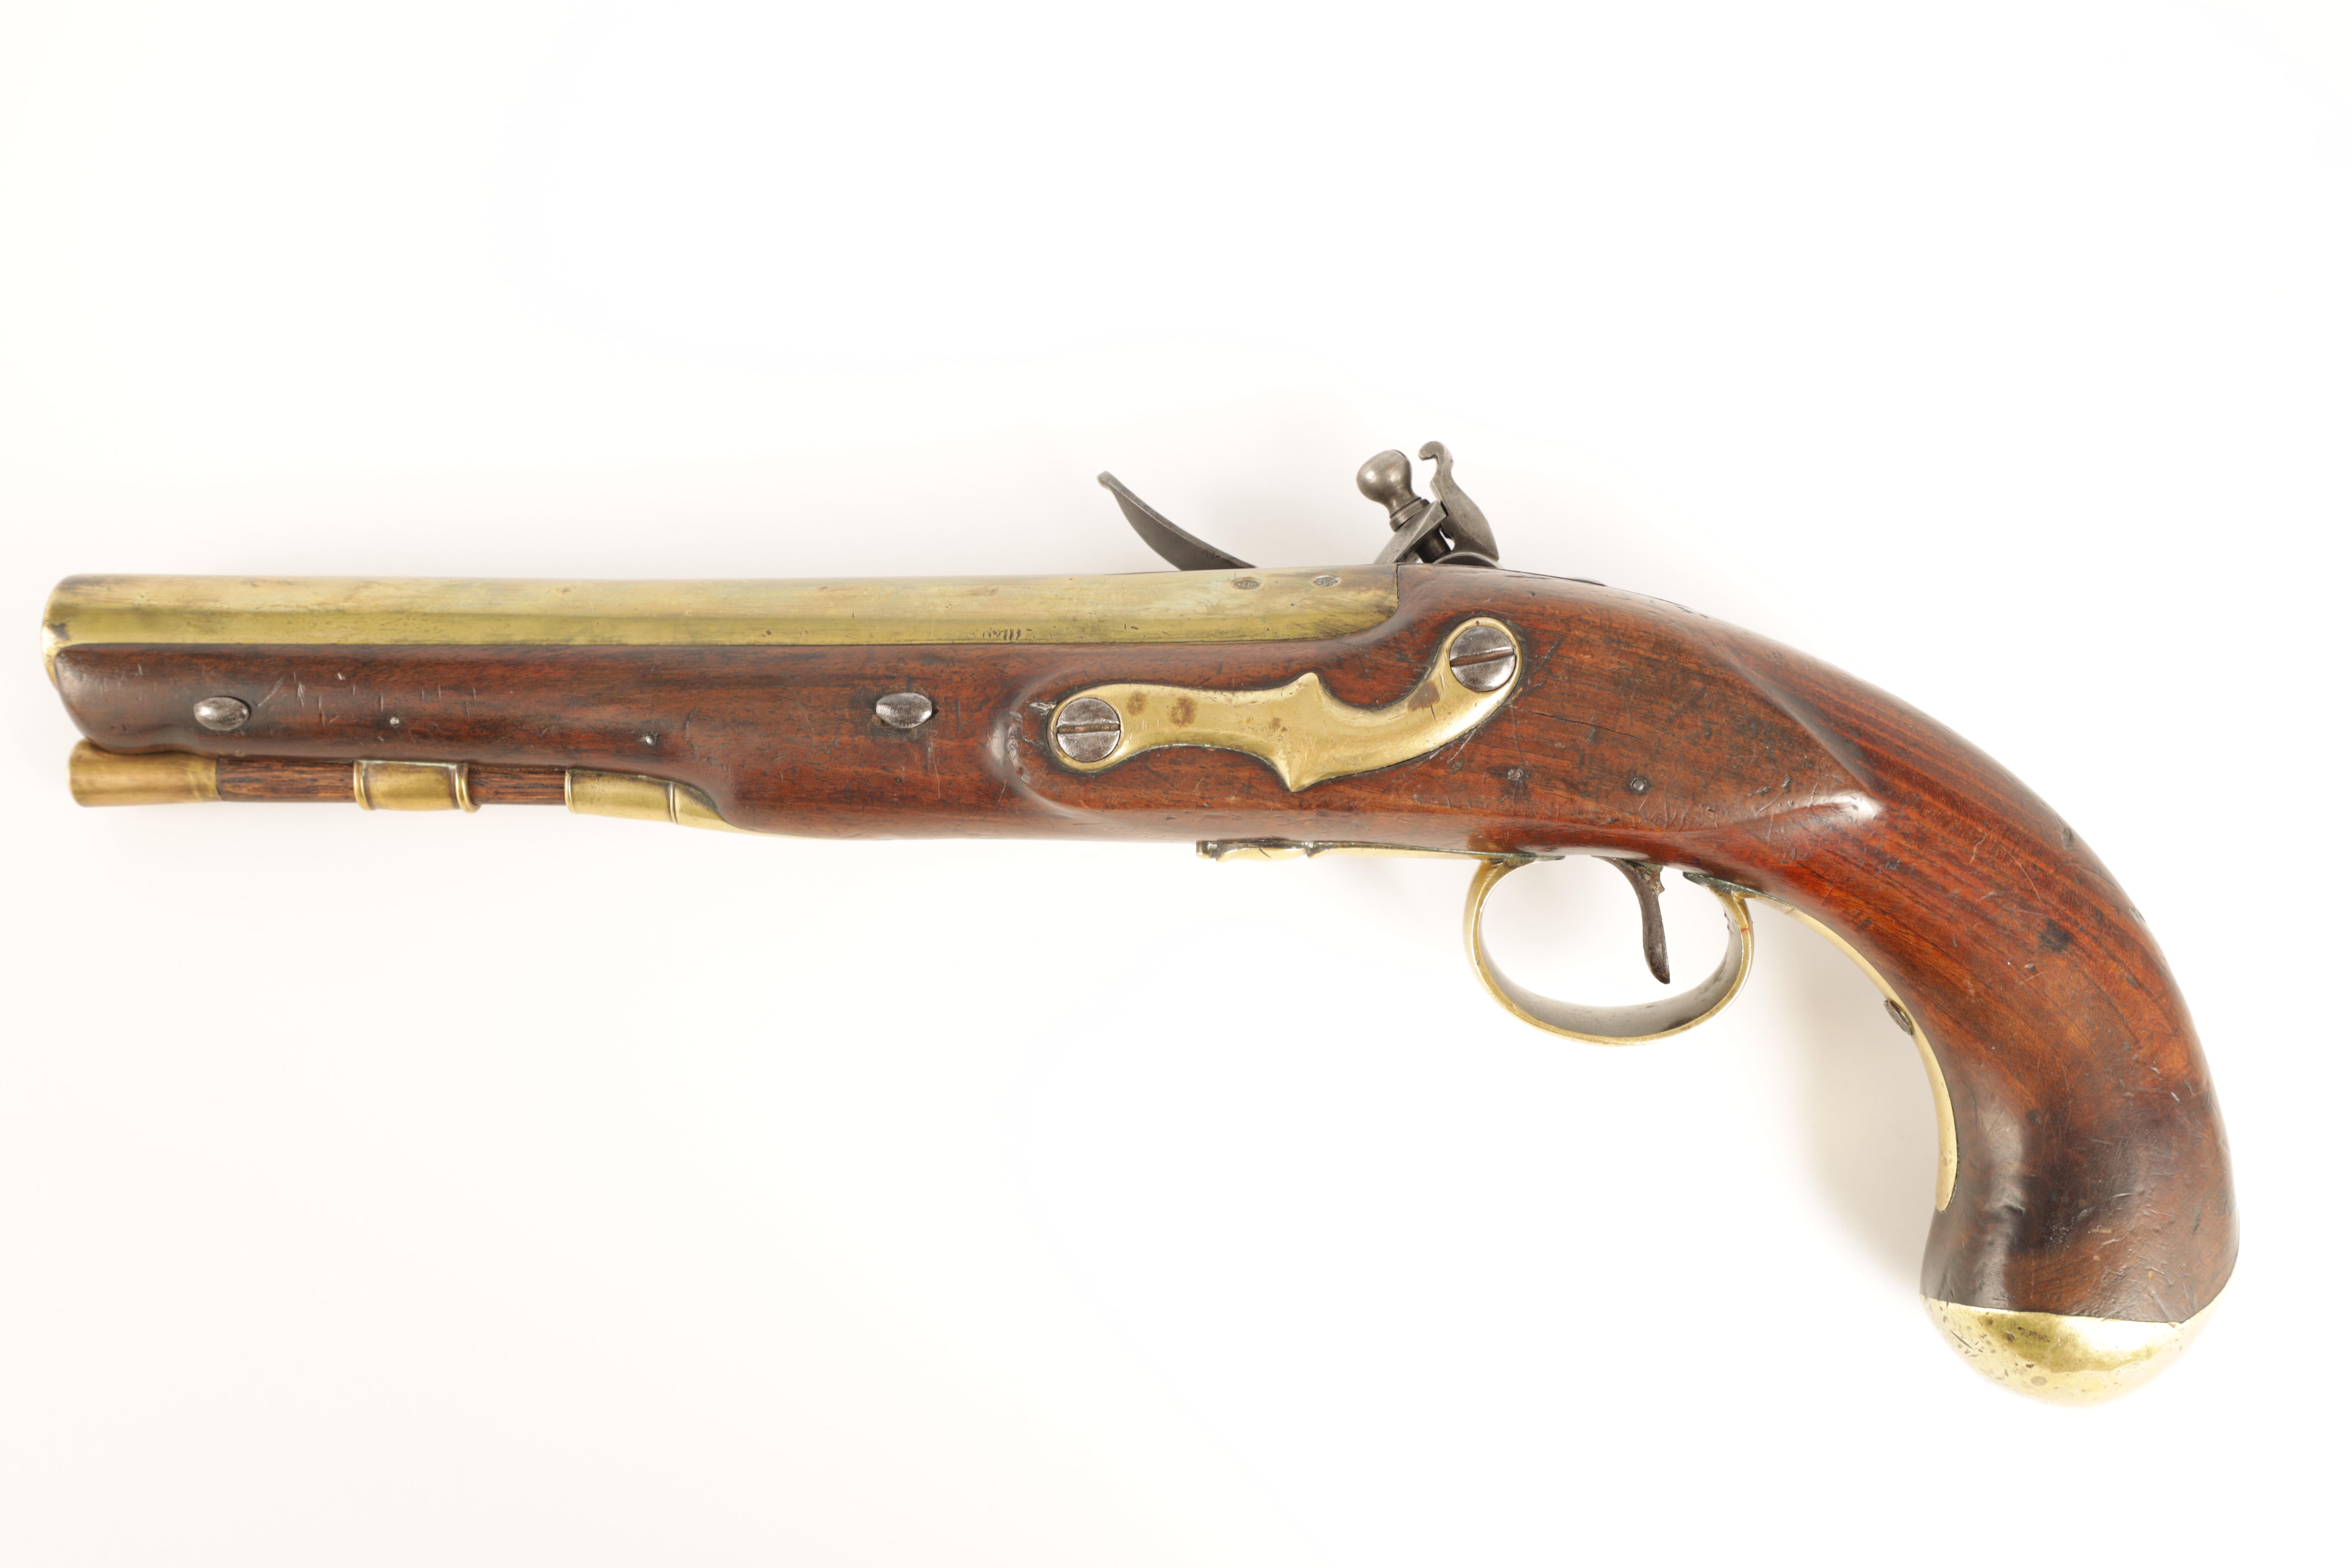 H.W. MORTIMER, LONDON. A RARE GEORGE III ROYAL MAIL COACH FLINTLOCK PISTOL with brass barrel - Image 8 of 9